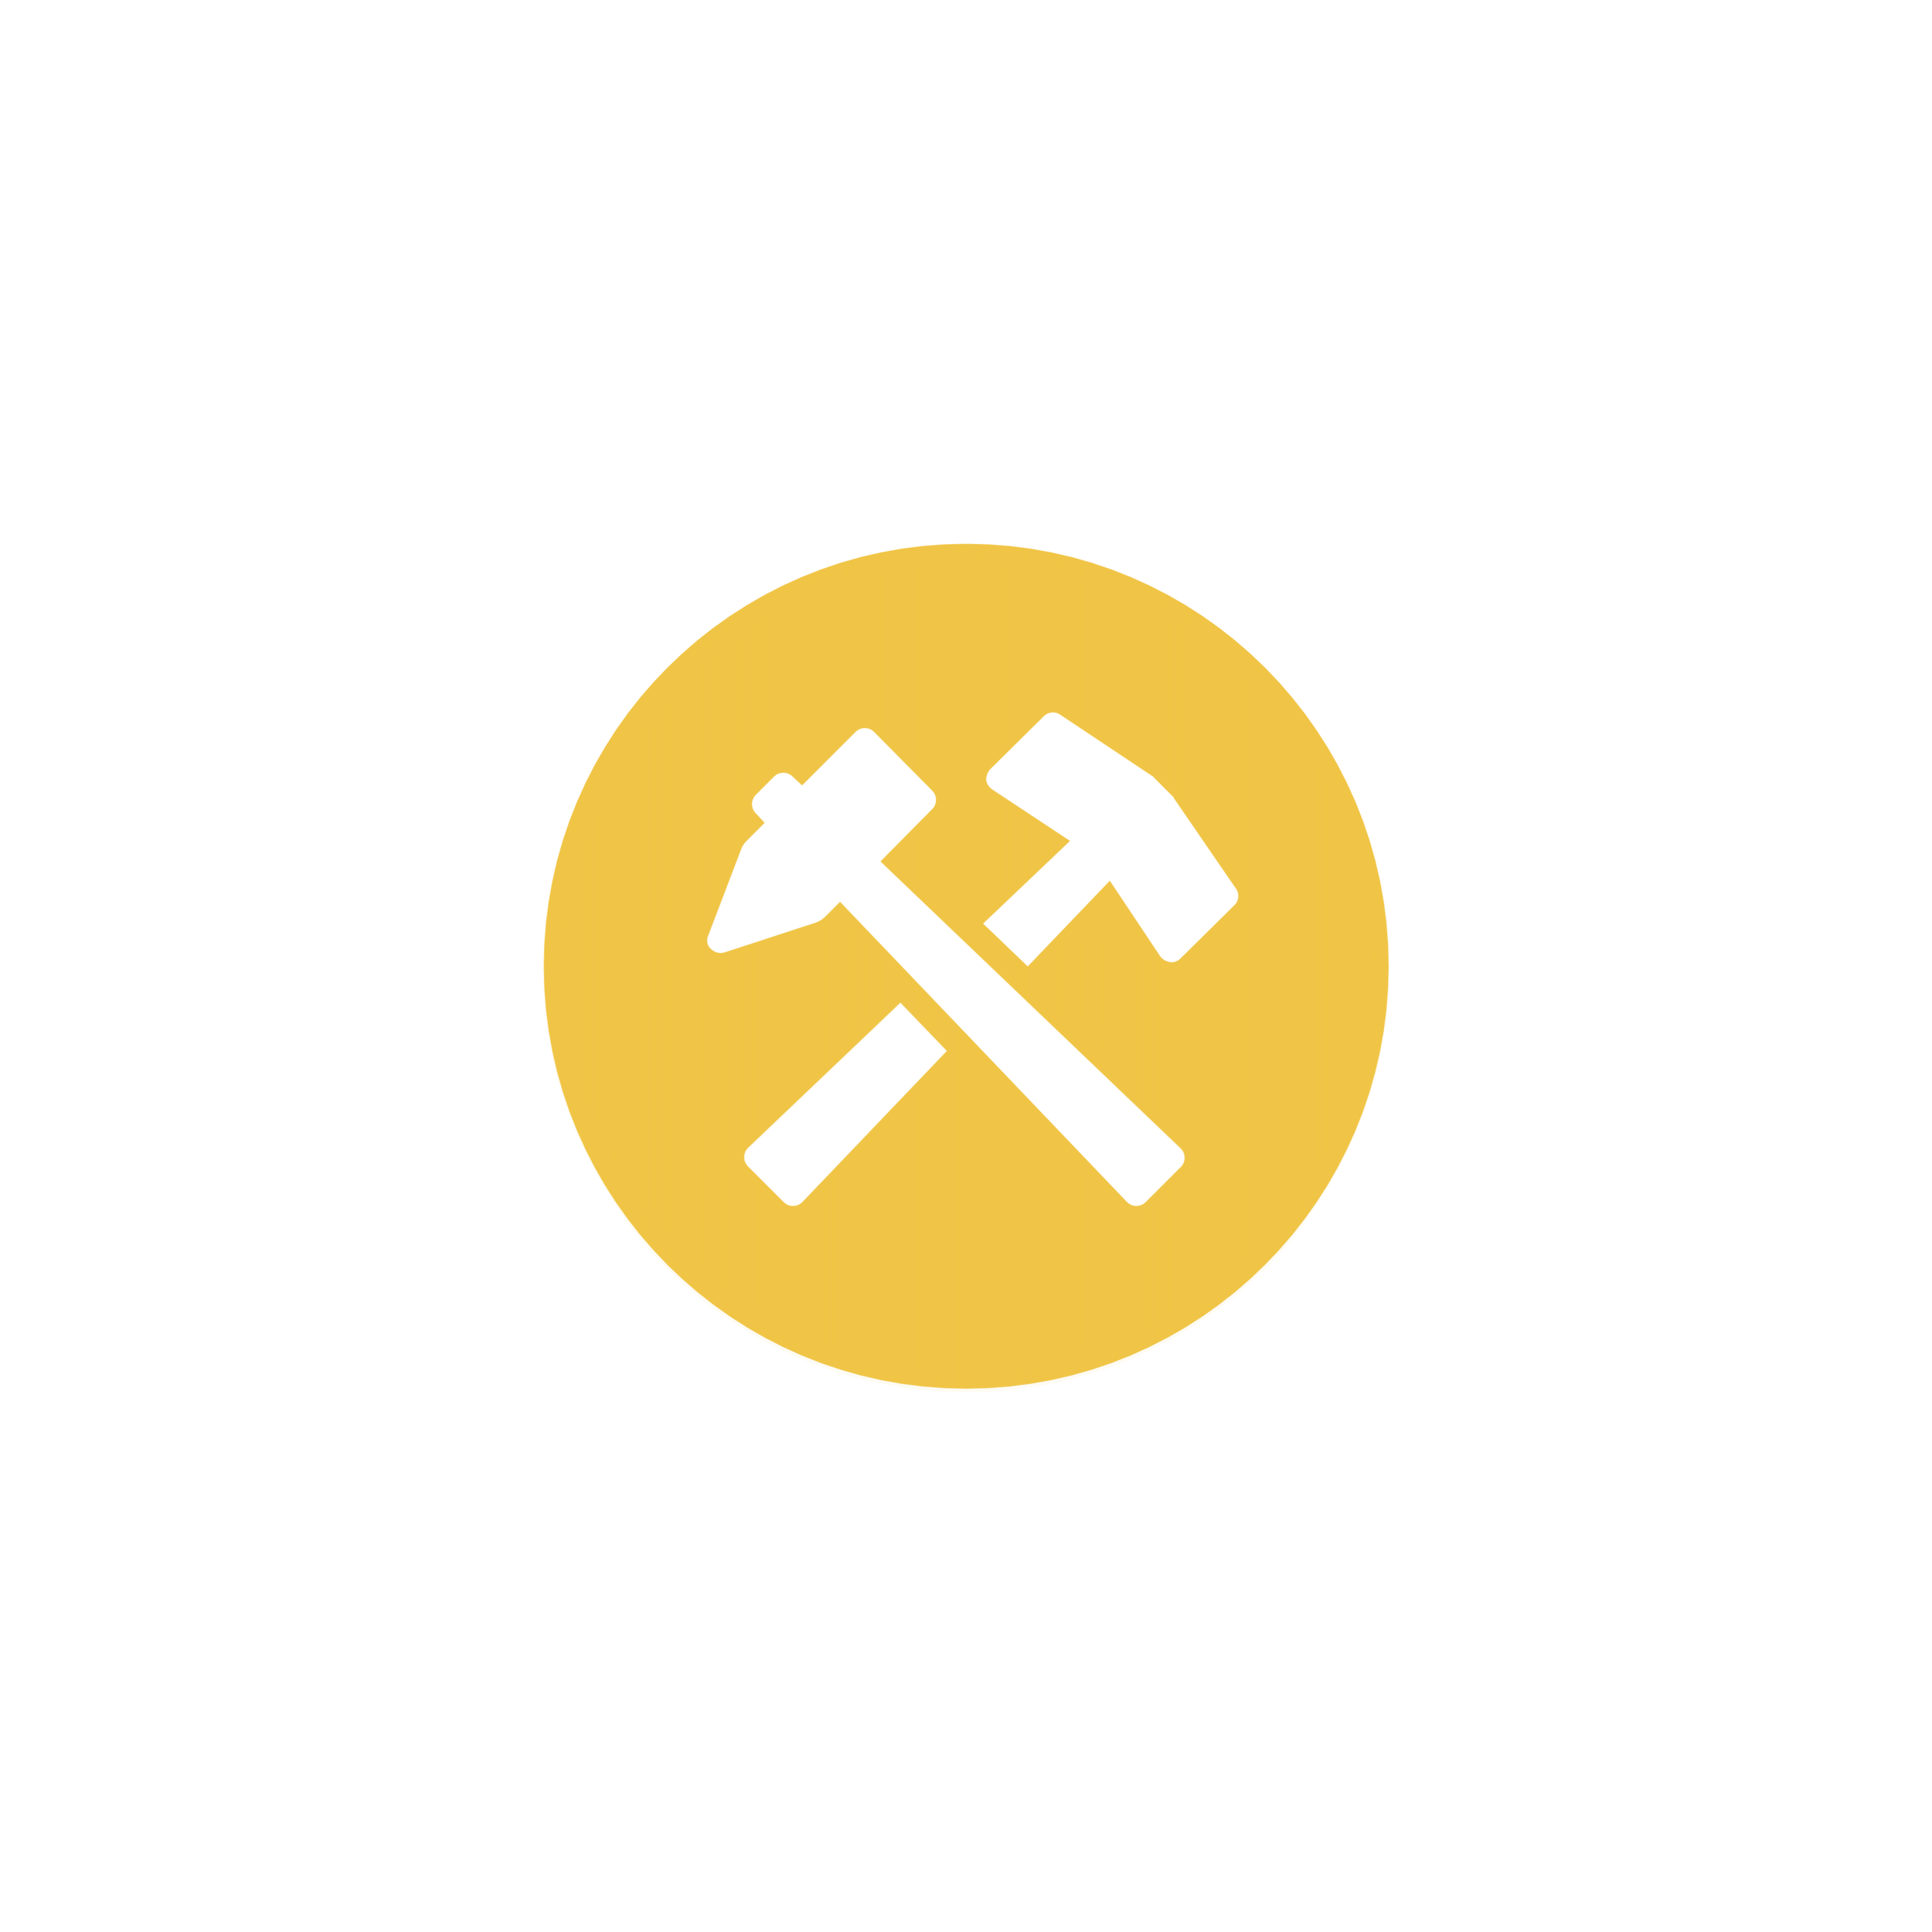 ServiceIcon6.png